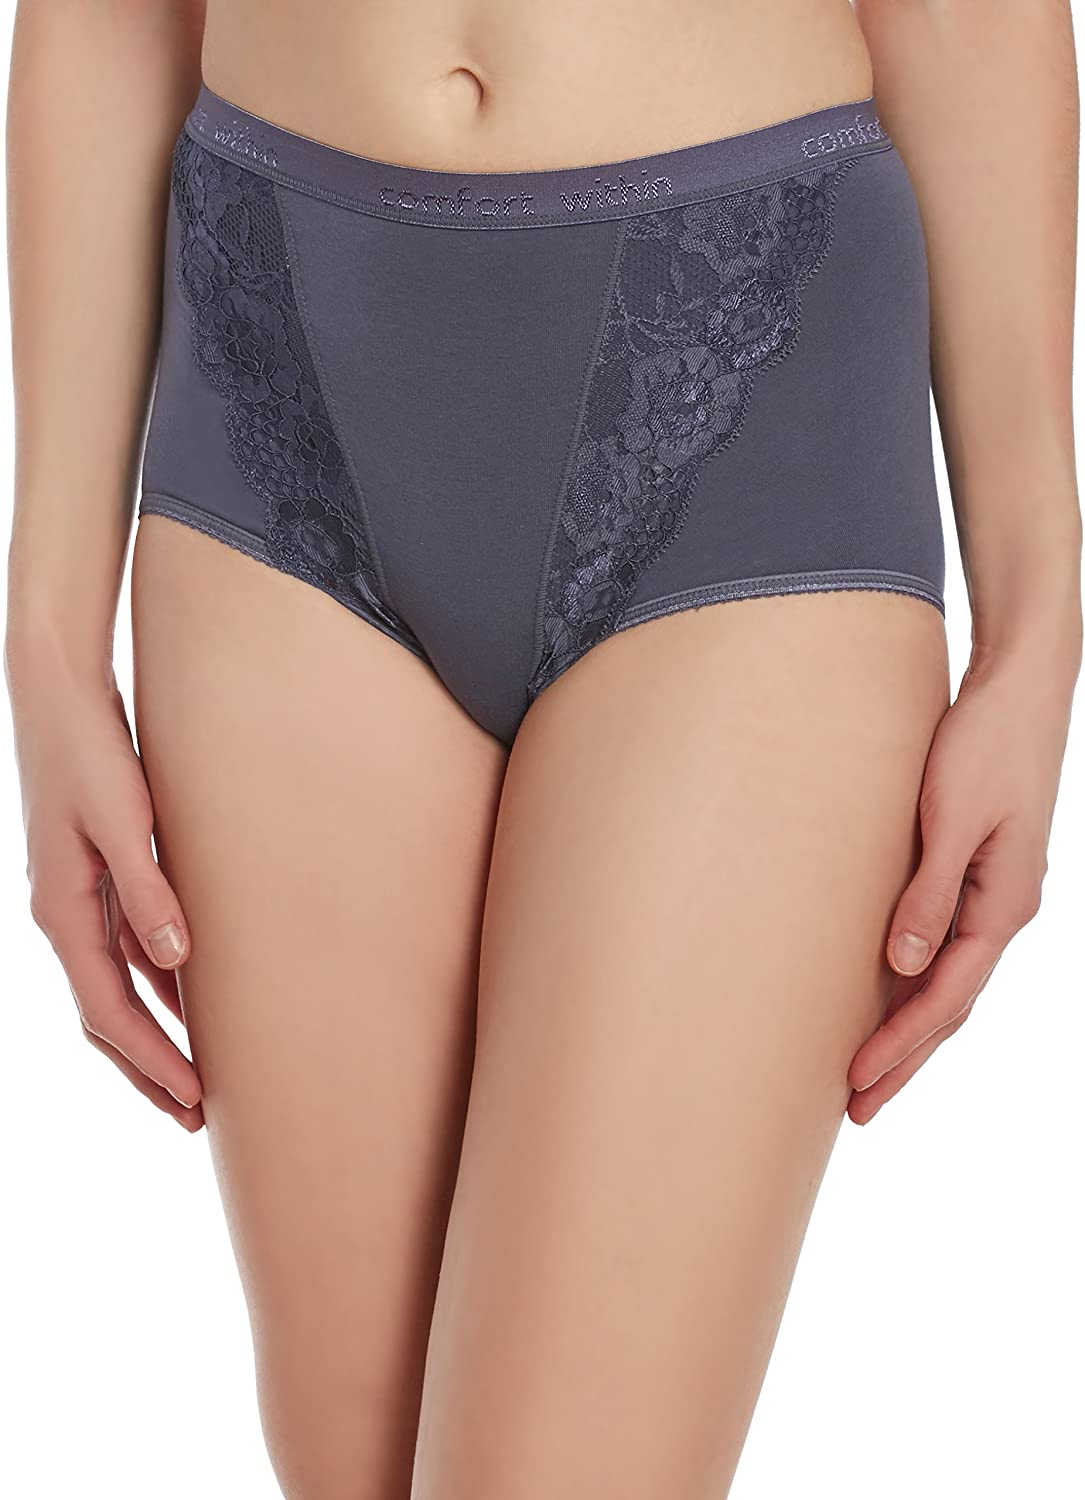 Comfort Within Women's Lace Panty Briefs -Panties, Soft Cotton Underwear